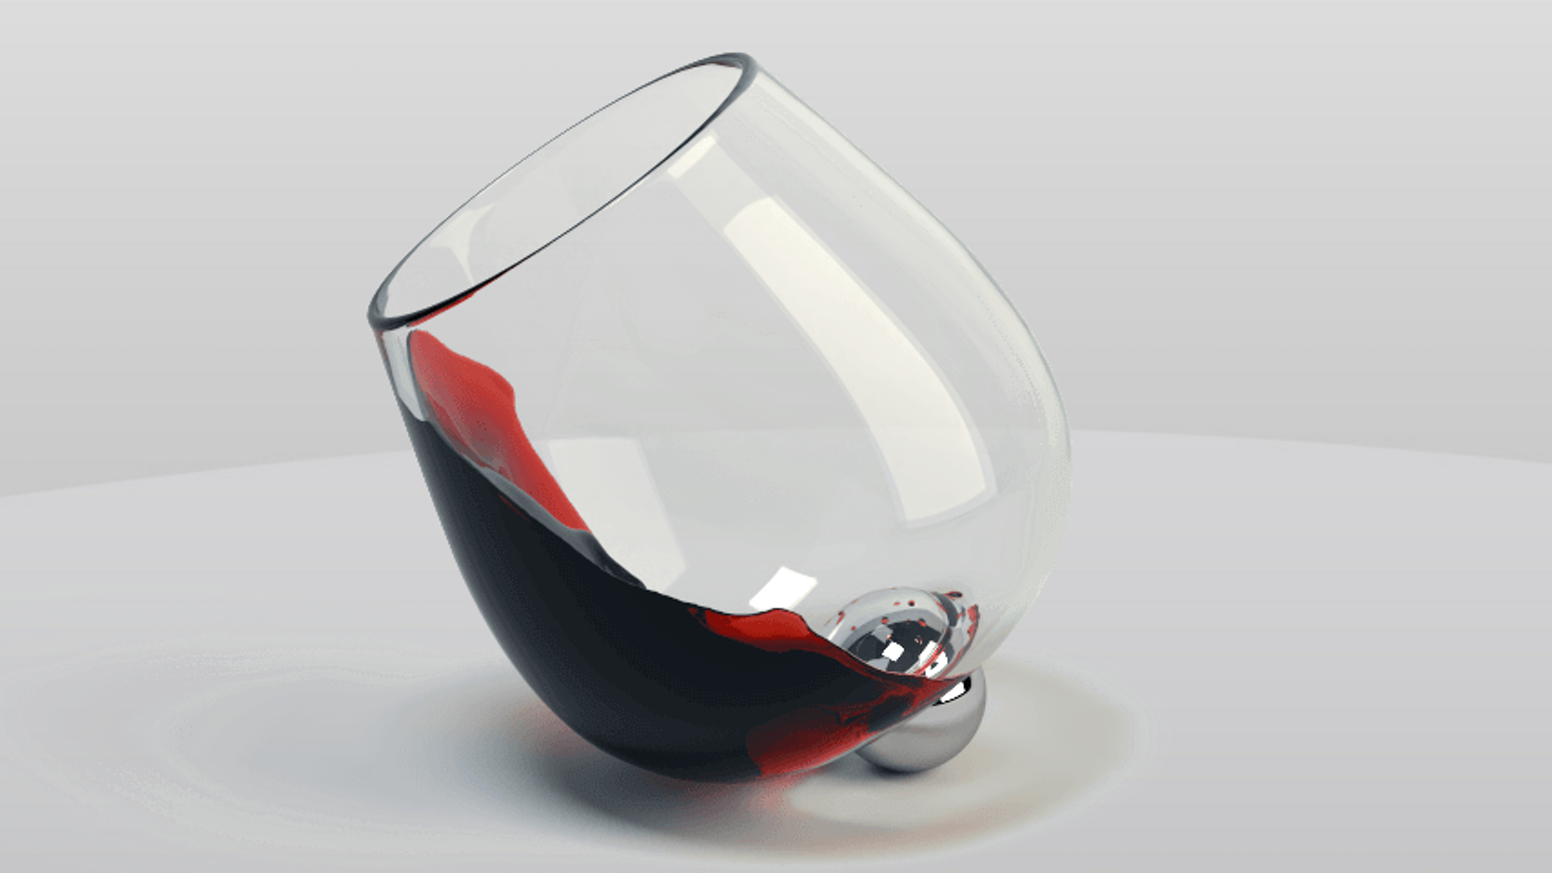 A modern wine glass that is nearly impossible to knock over. Easy swirling aerates the drink by blending the aromas and flavors.